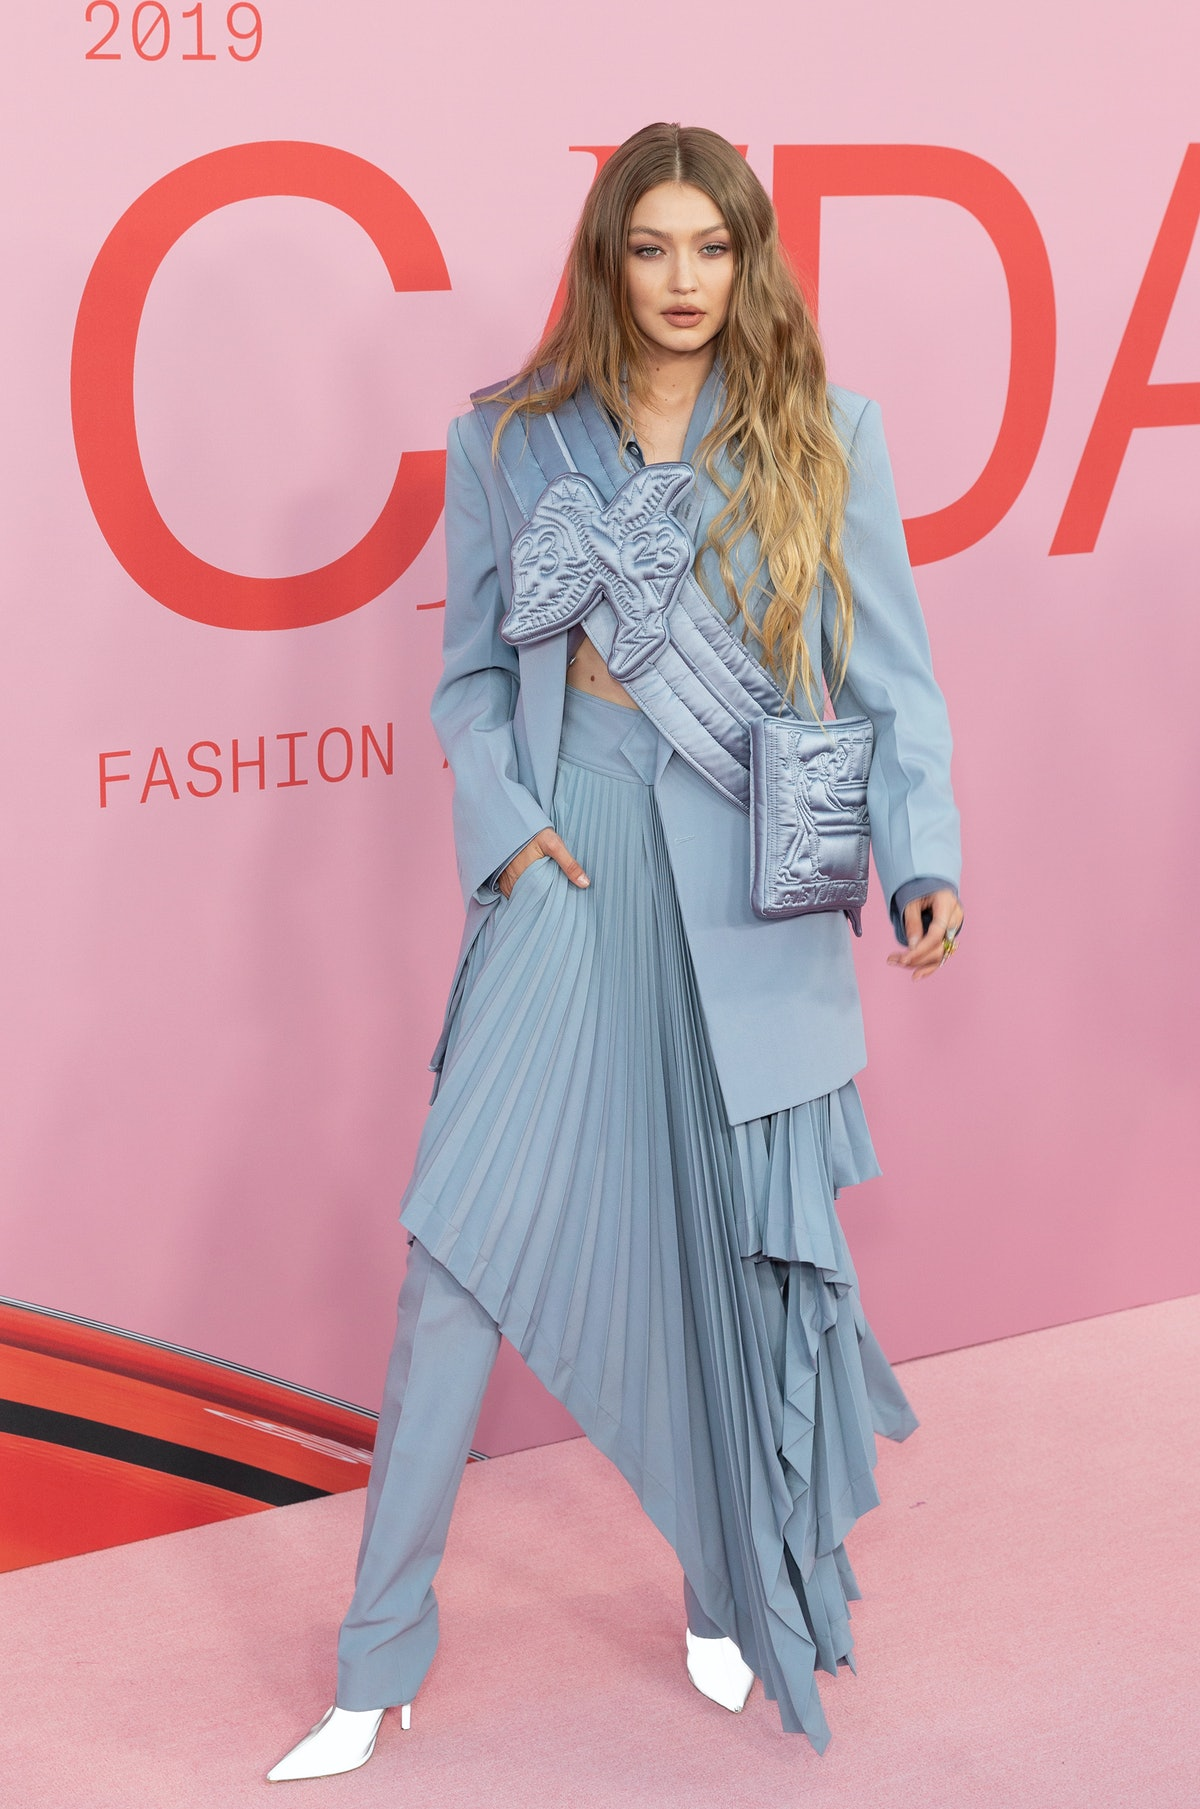 BROOKLYN MUSEUM, NEW YORK, UNITED STATES - 2019/06/03: Gigi Hadid wearing dress by Off-White attends...